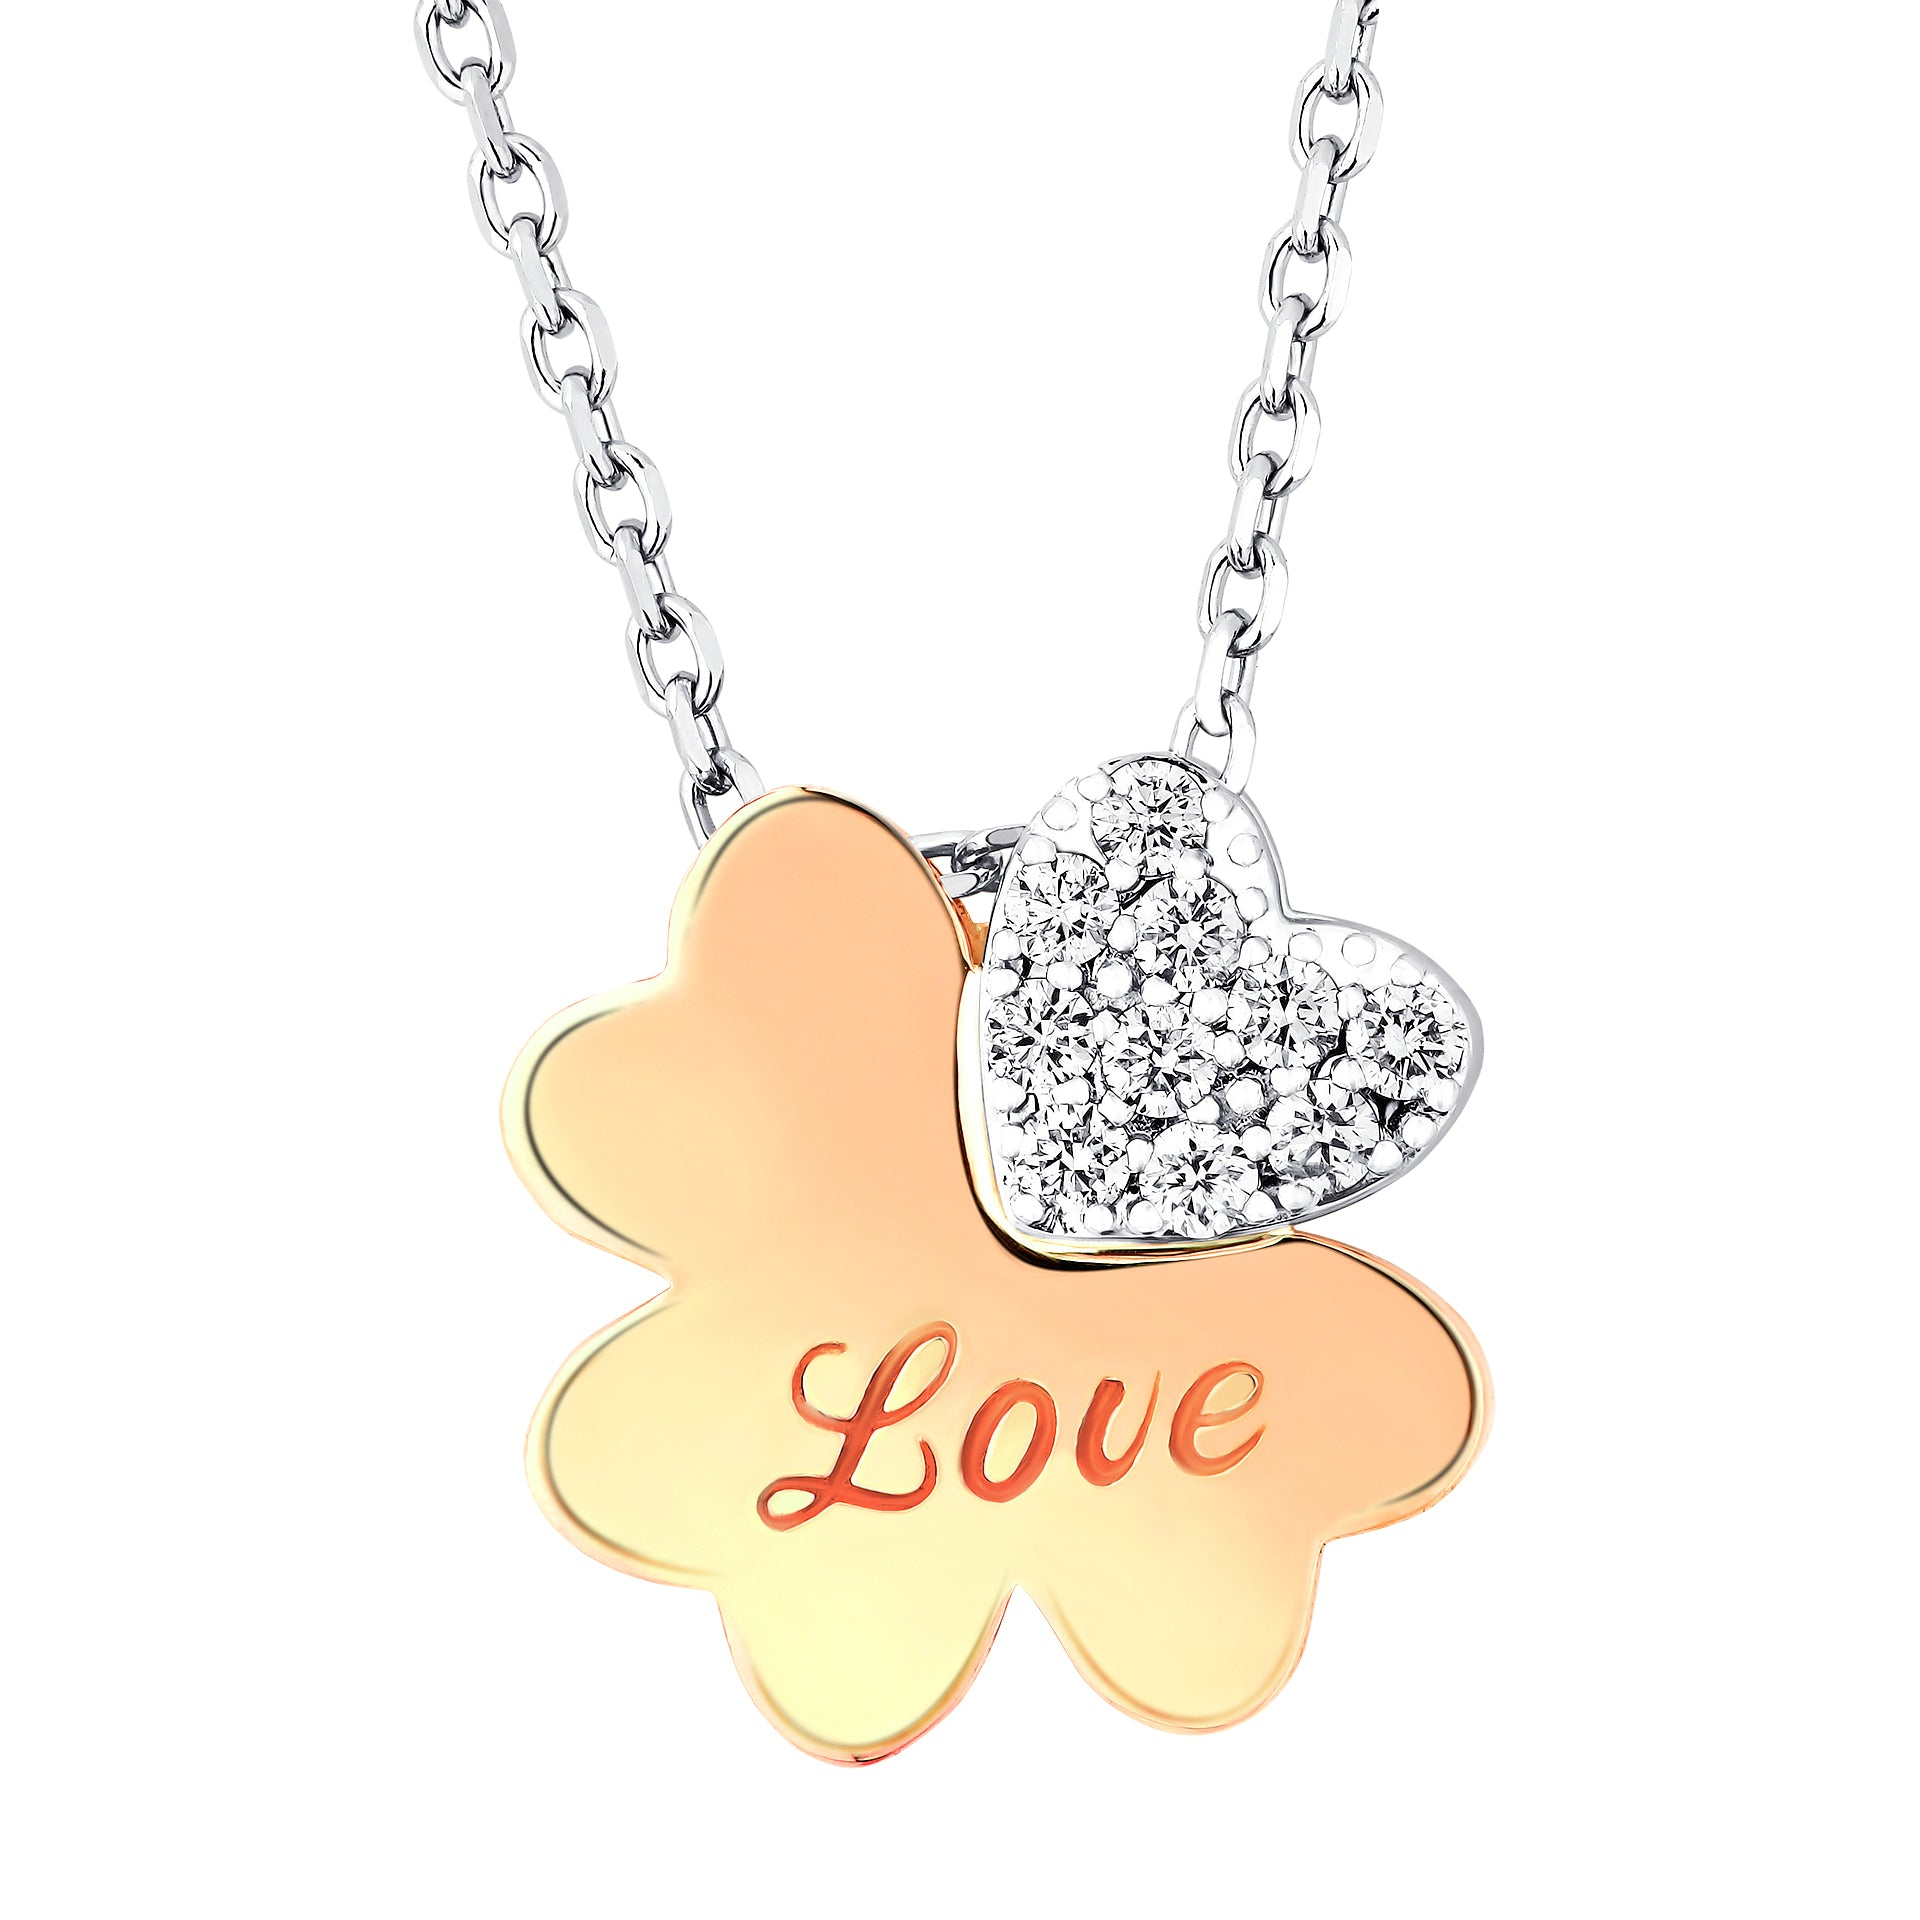 Exclusive Clover Flower Diamond Chain Necklace - KARP Jewellery